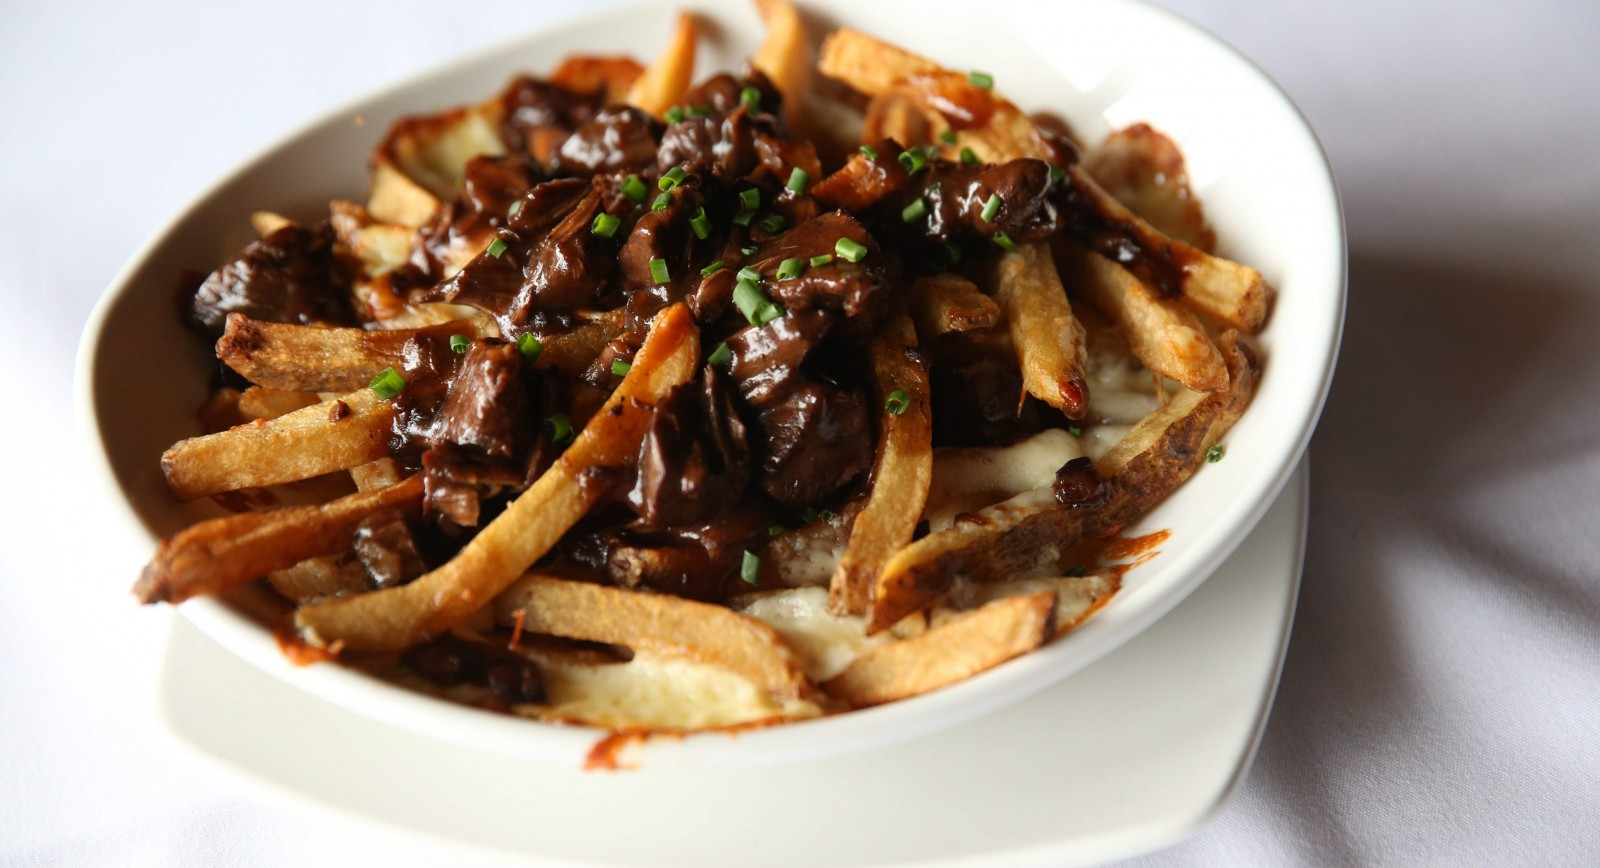 The beef shank poutine from the Colden Mill with fries, braised beef, beef gravy and cheddar curd. (Sharon Cantillon/Buffalo News)